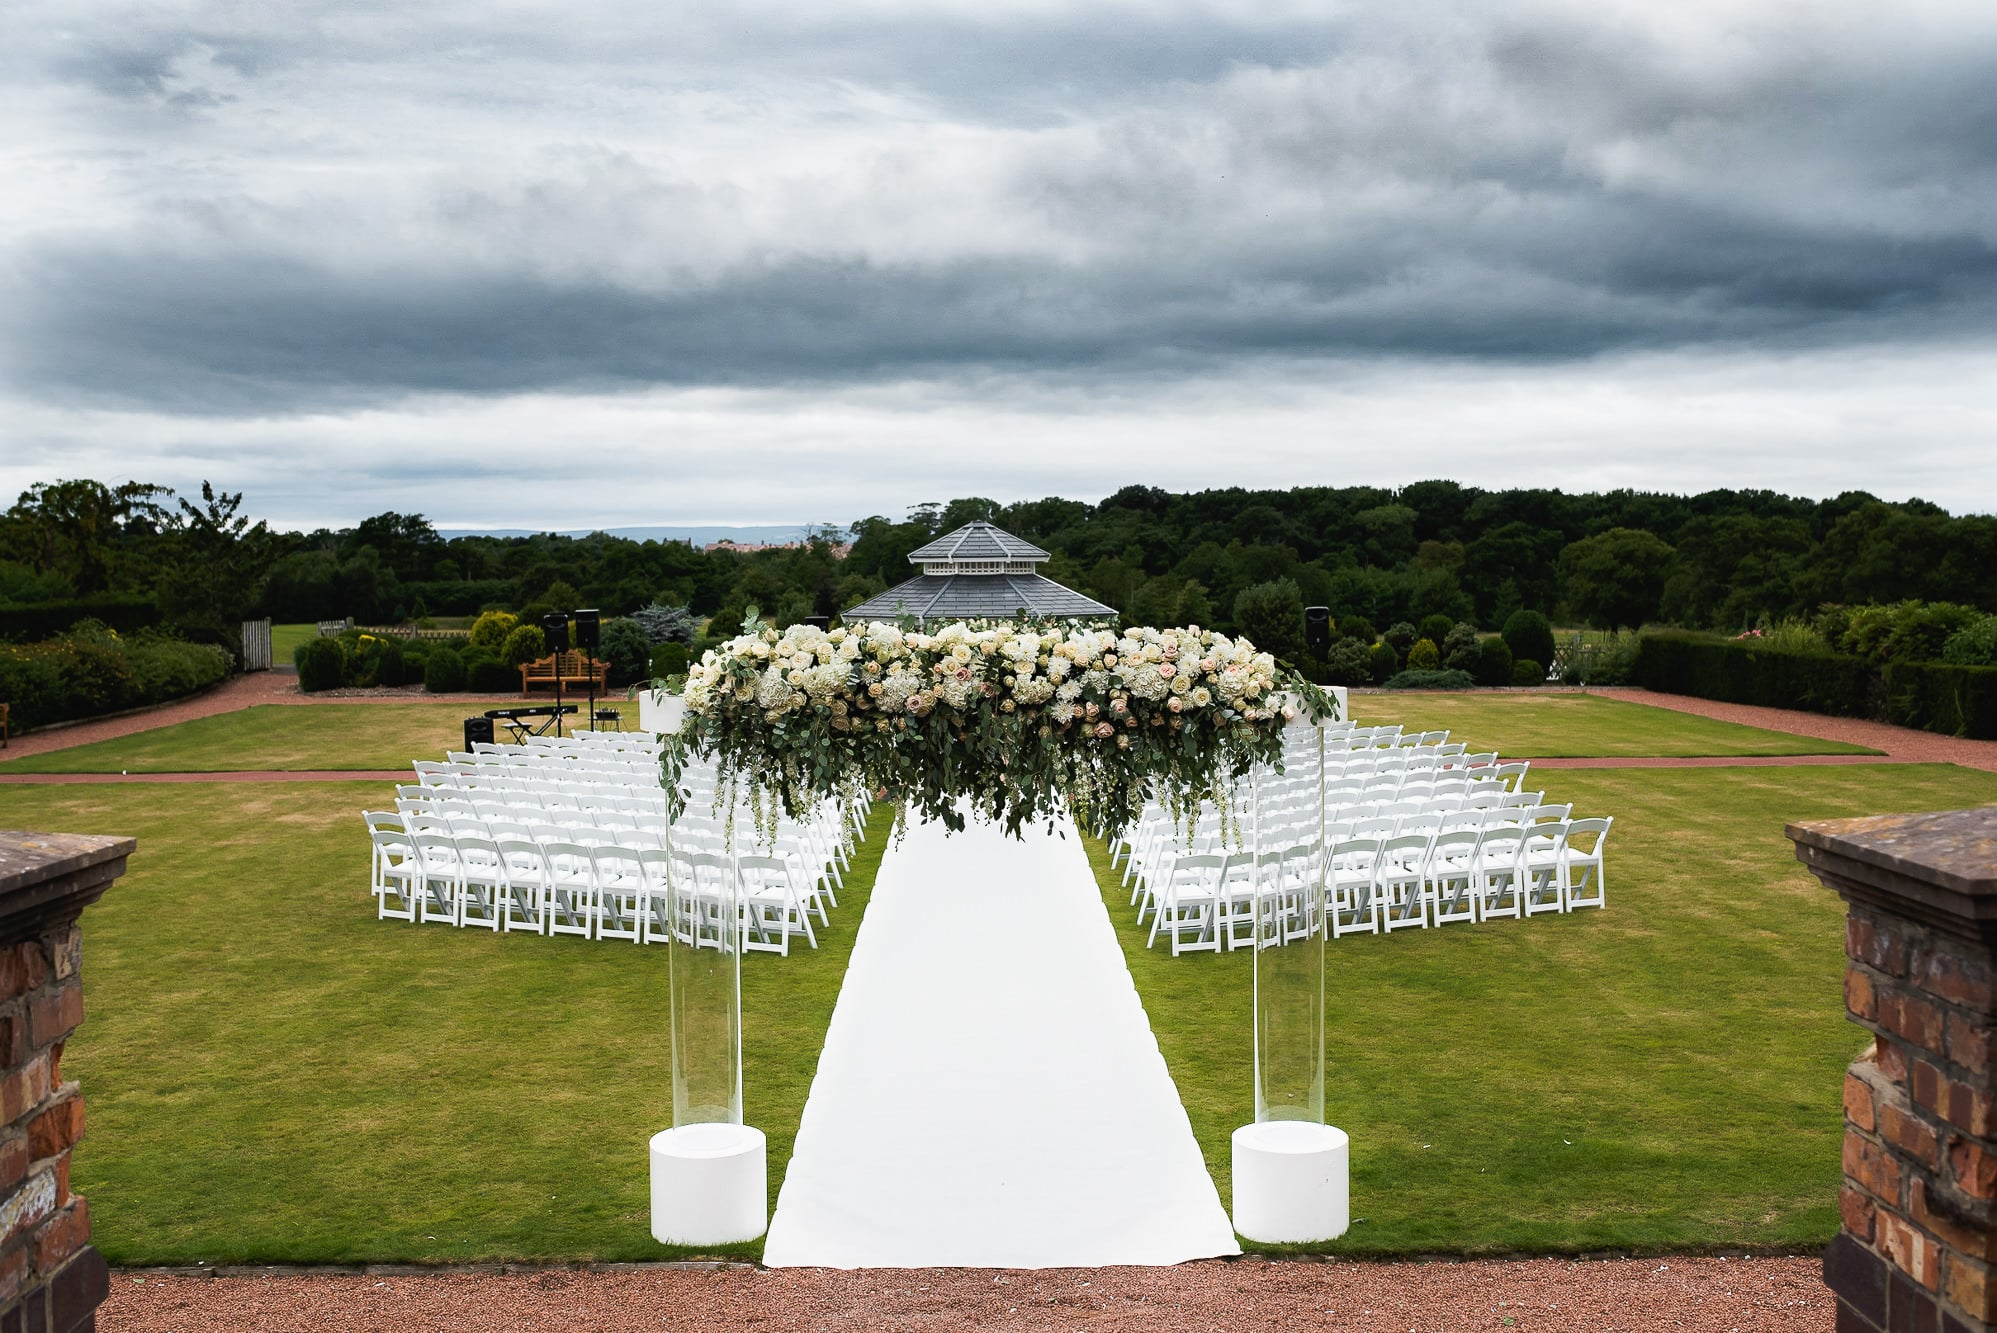 Wedding venue with red floral architecture